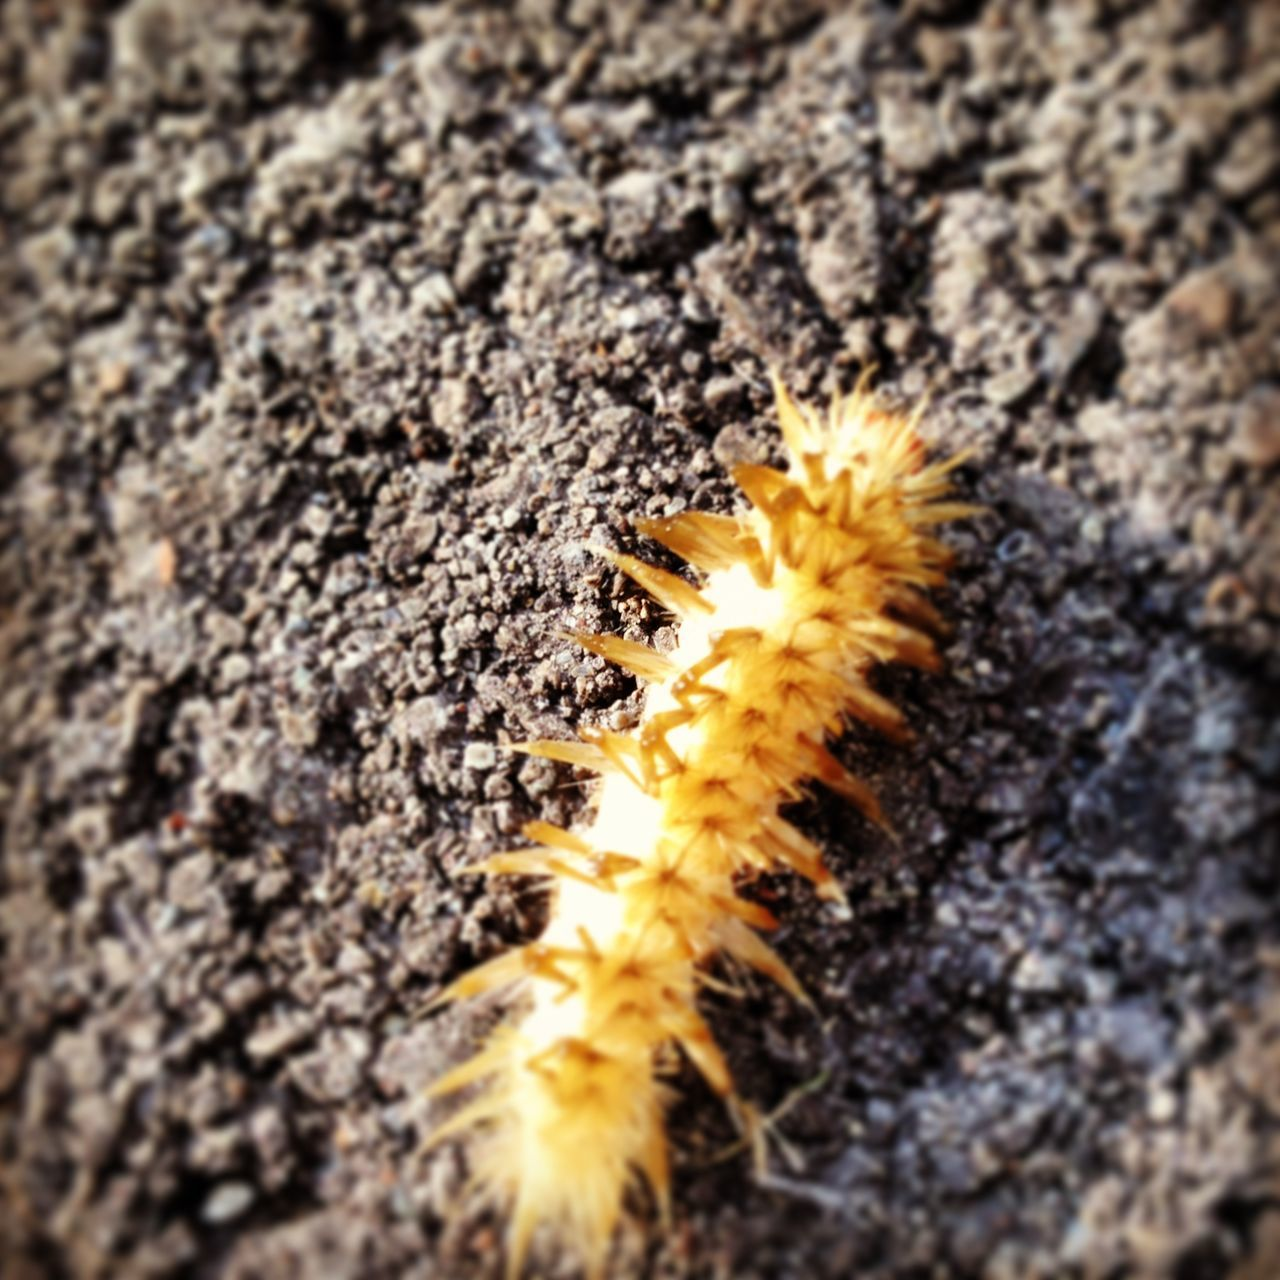 Animal Themes Beauty In Nature Caterpillar Close-up Day Insect Morning Nature No People Outdoors Selective Focus Spiky